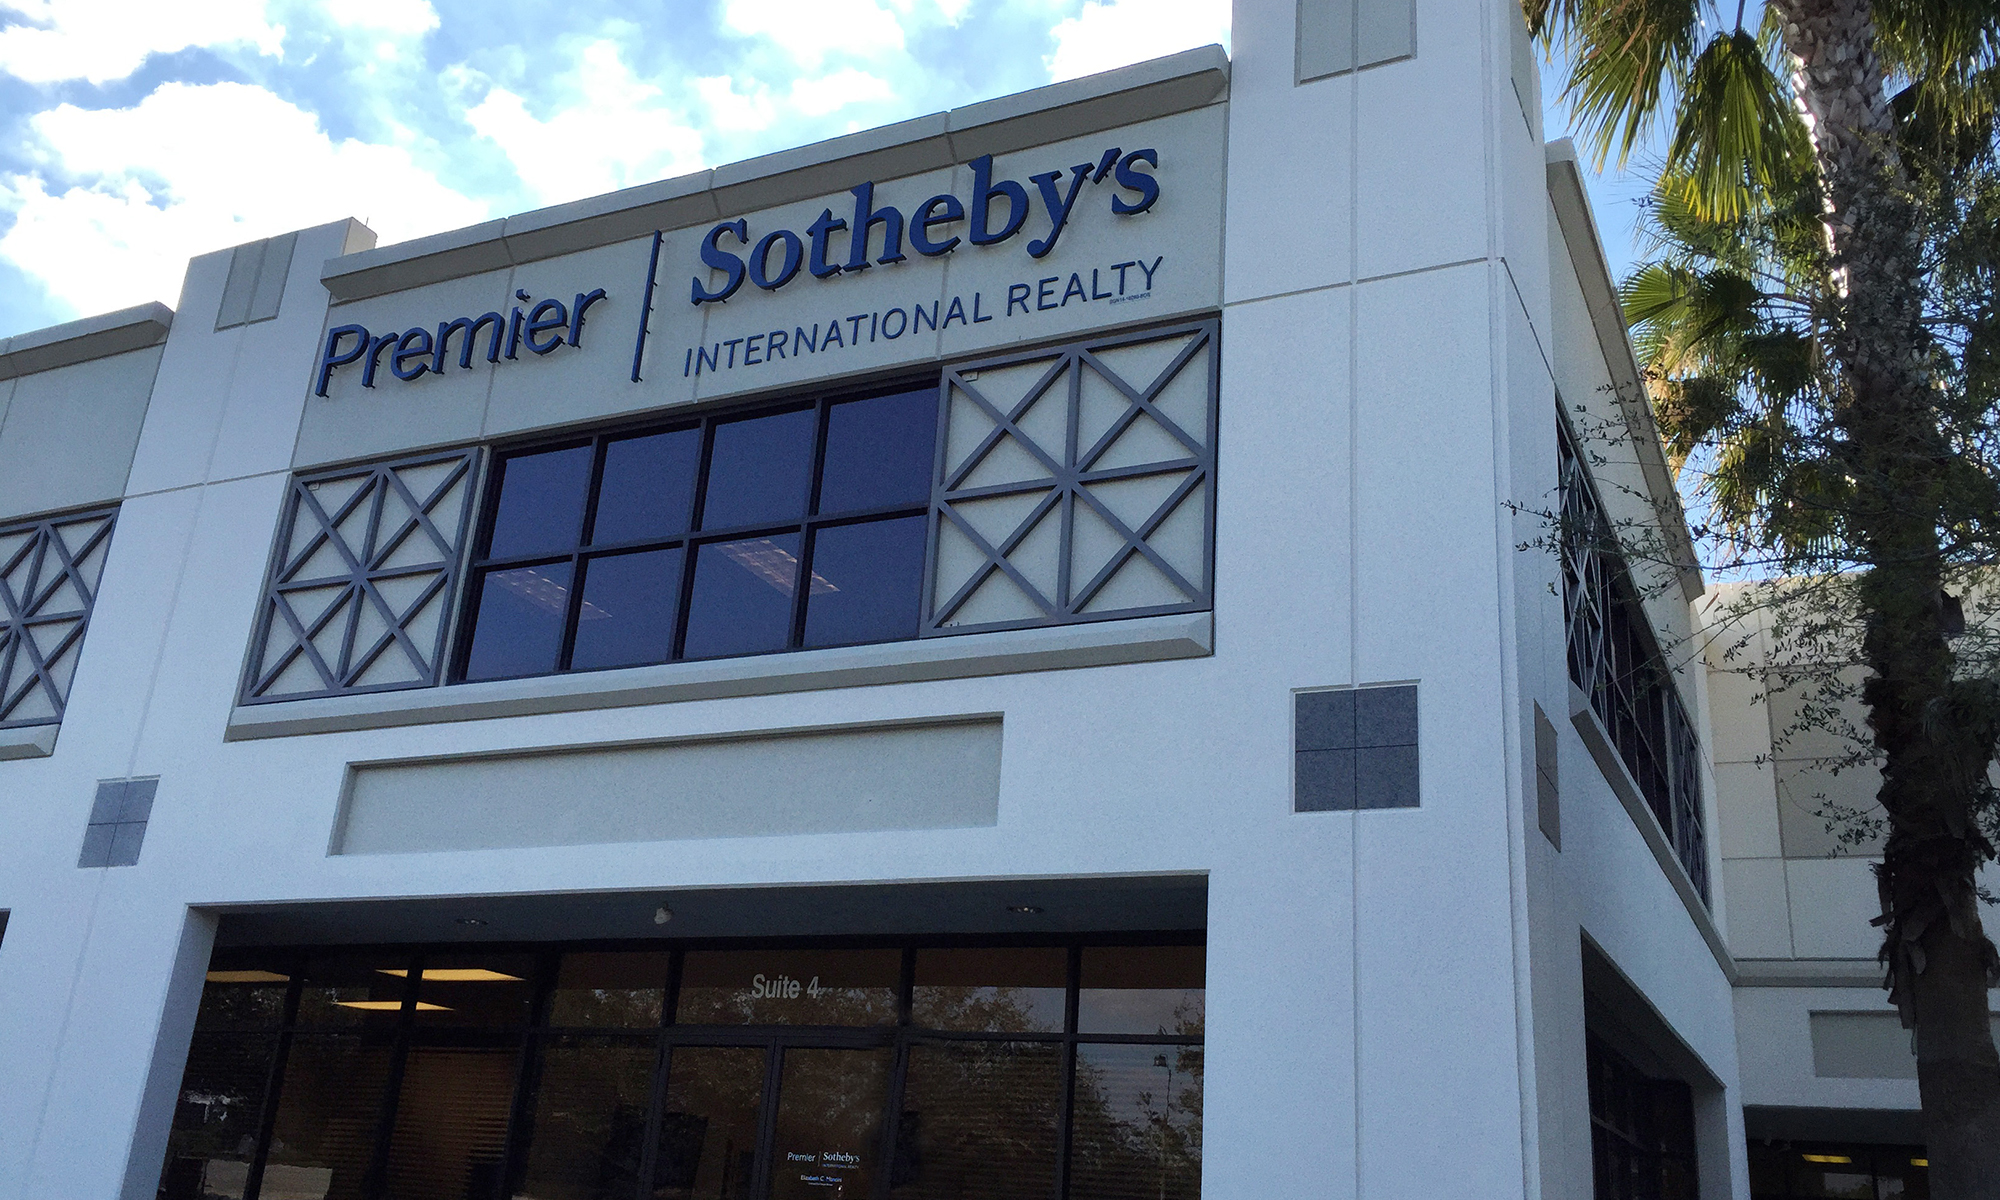 Office Premier Sotheby's International Realty Bonita Springs Photo